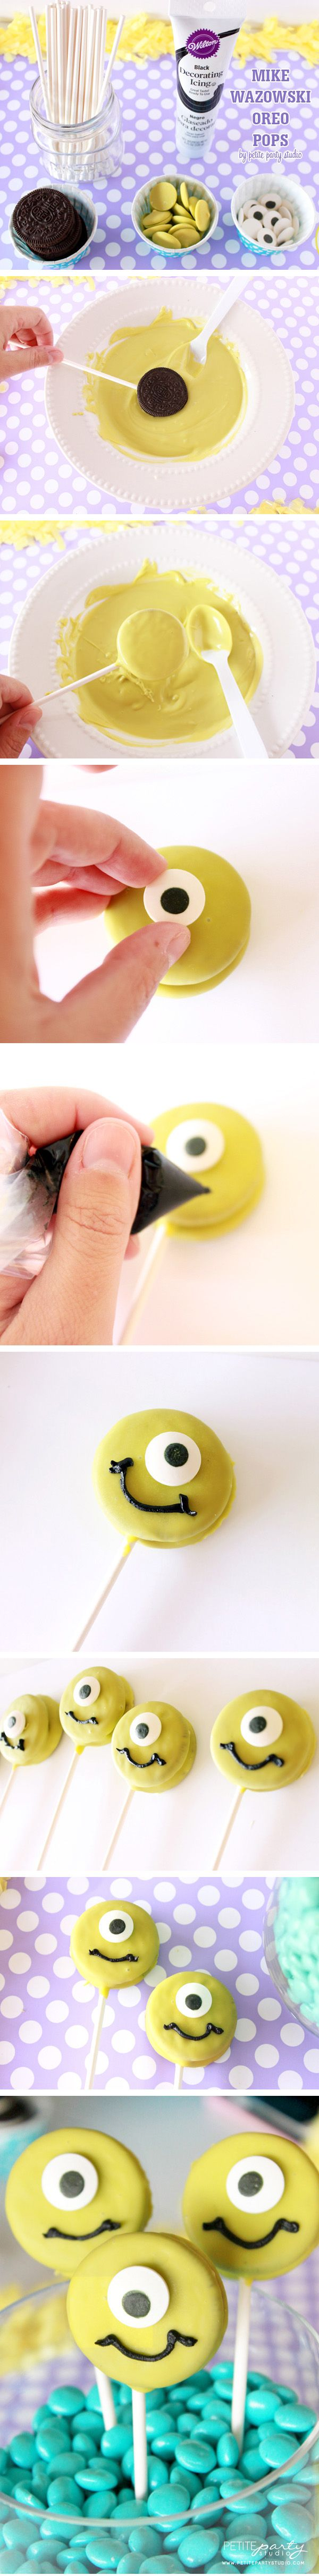 Mike Wazowski Oreo Pop DIY #monstersinc #monstersuniversity #oreopops